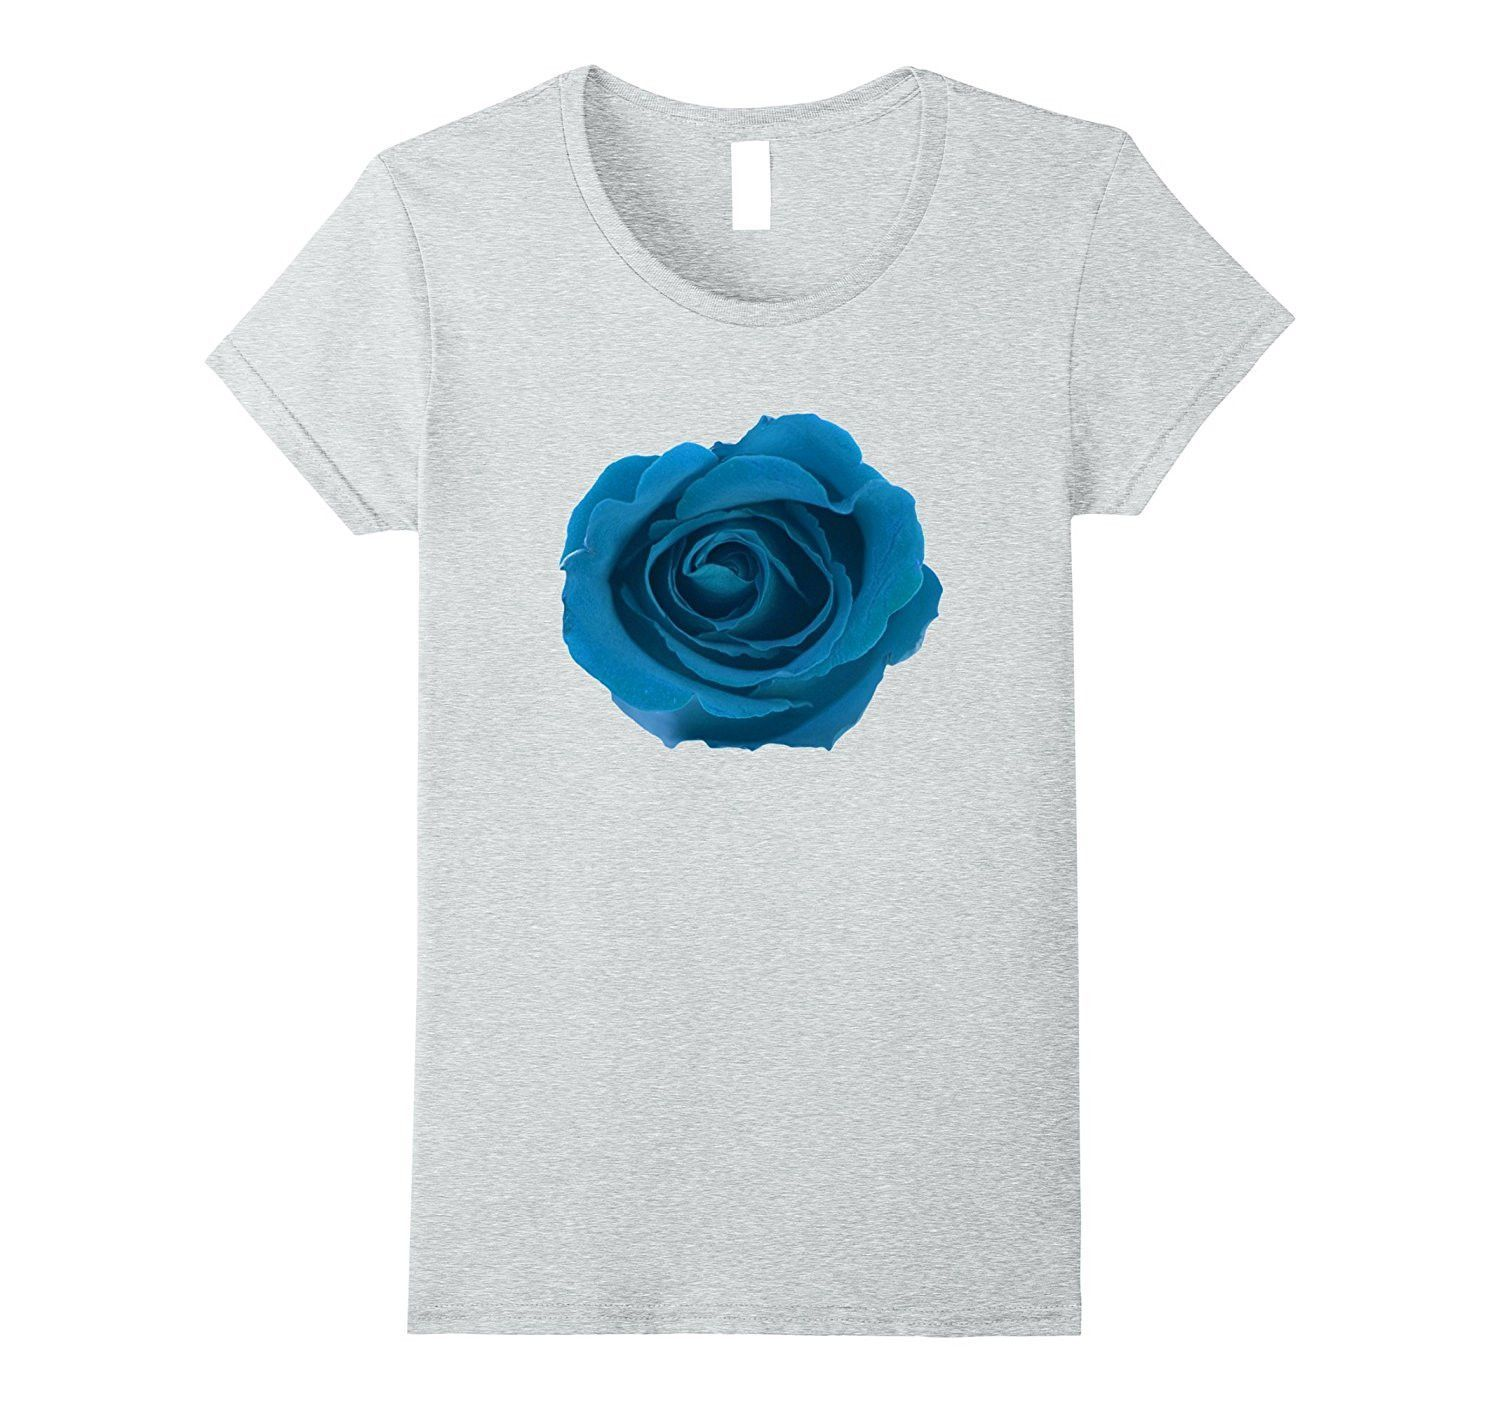 In Full Bloom Big Blue Rose Flower Floral Theme TShirt Products - Machu picchu tampa